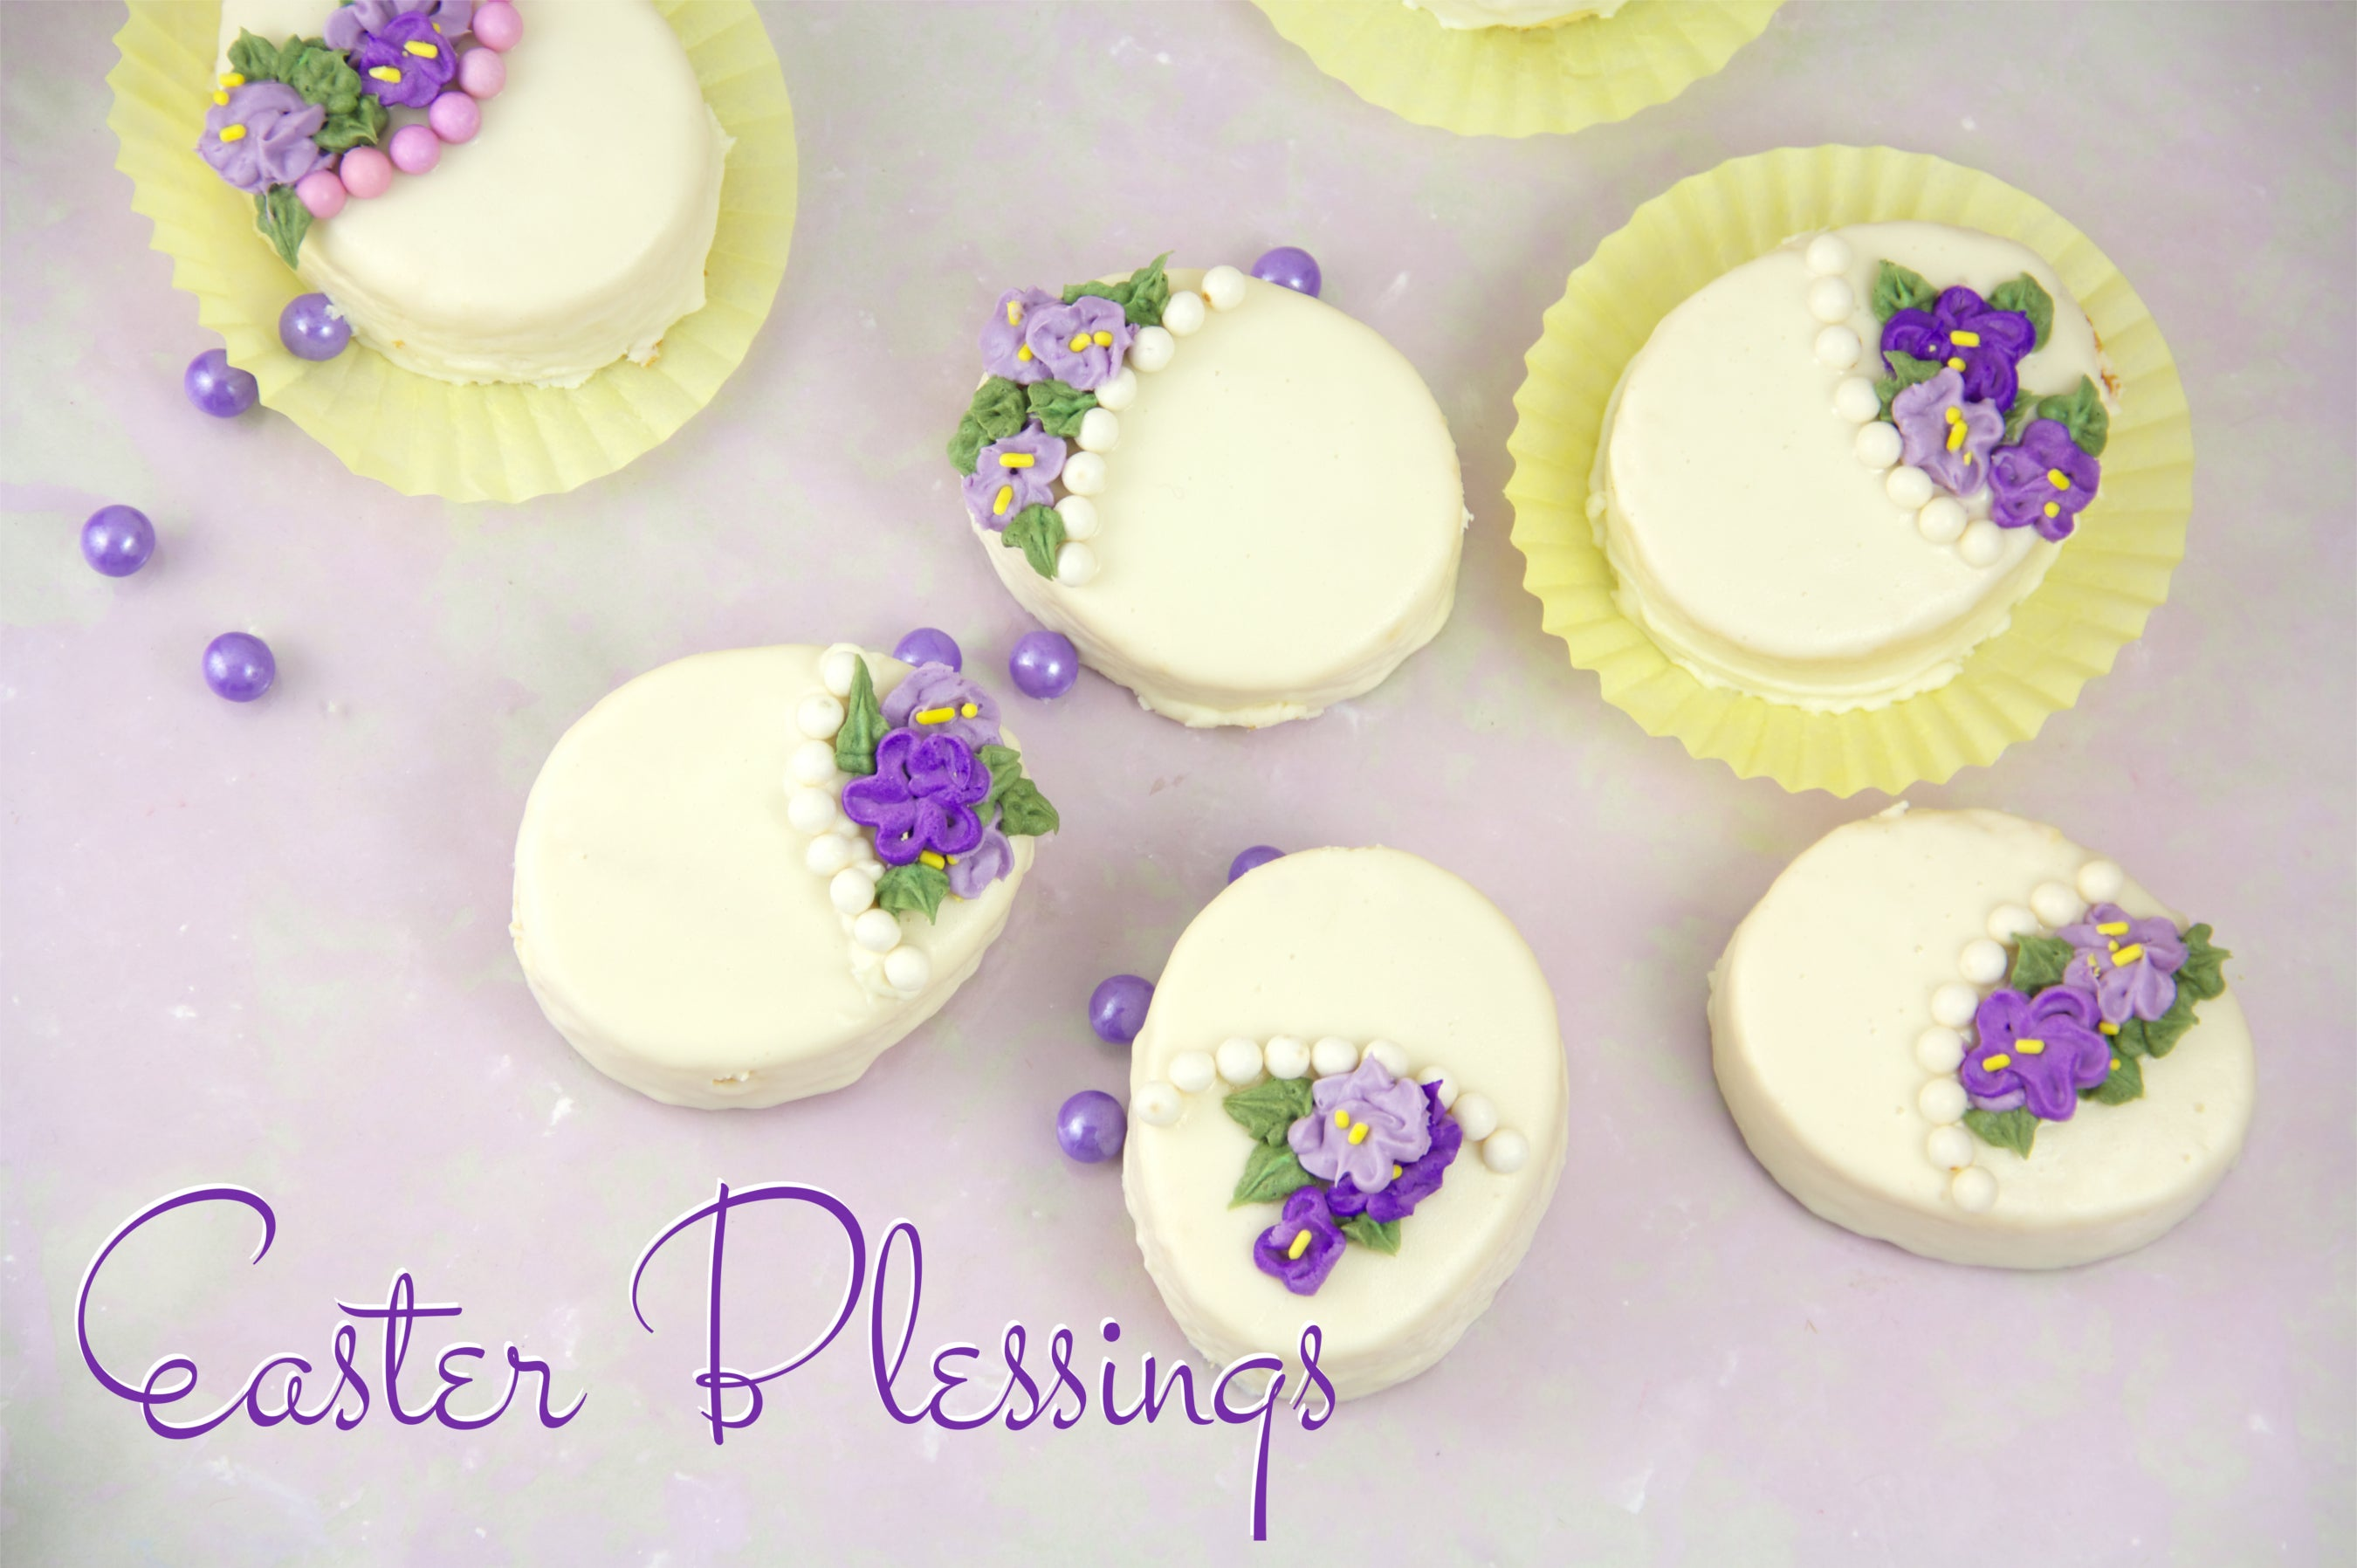 Easter Blessings Egg Cakes